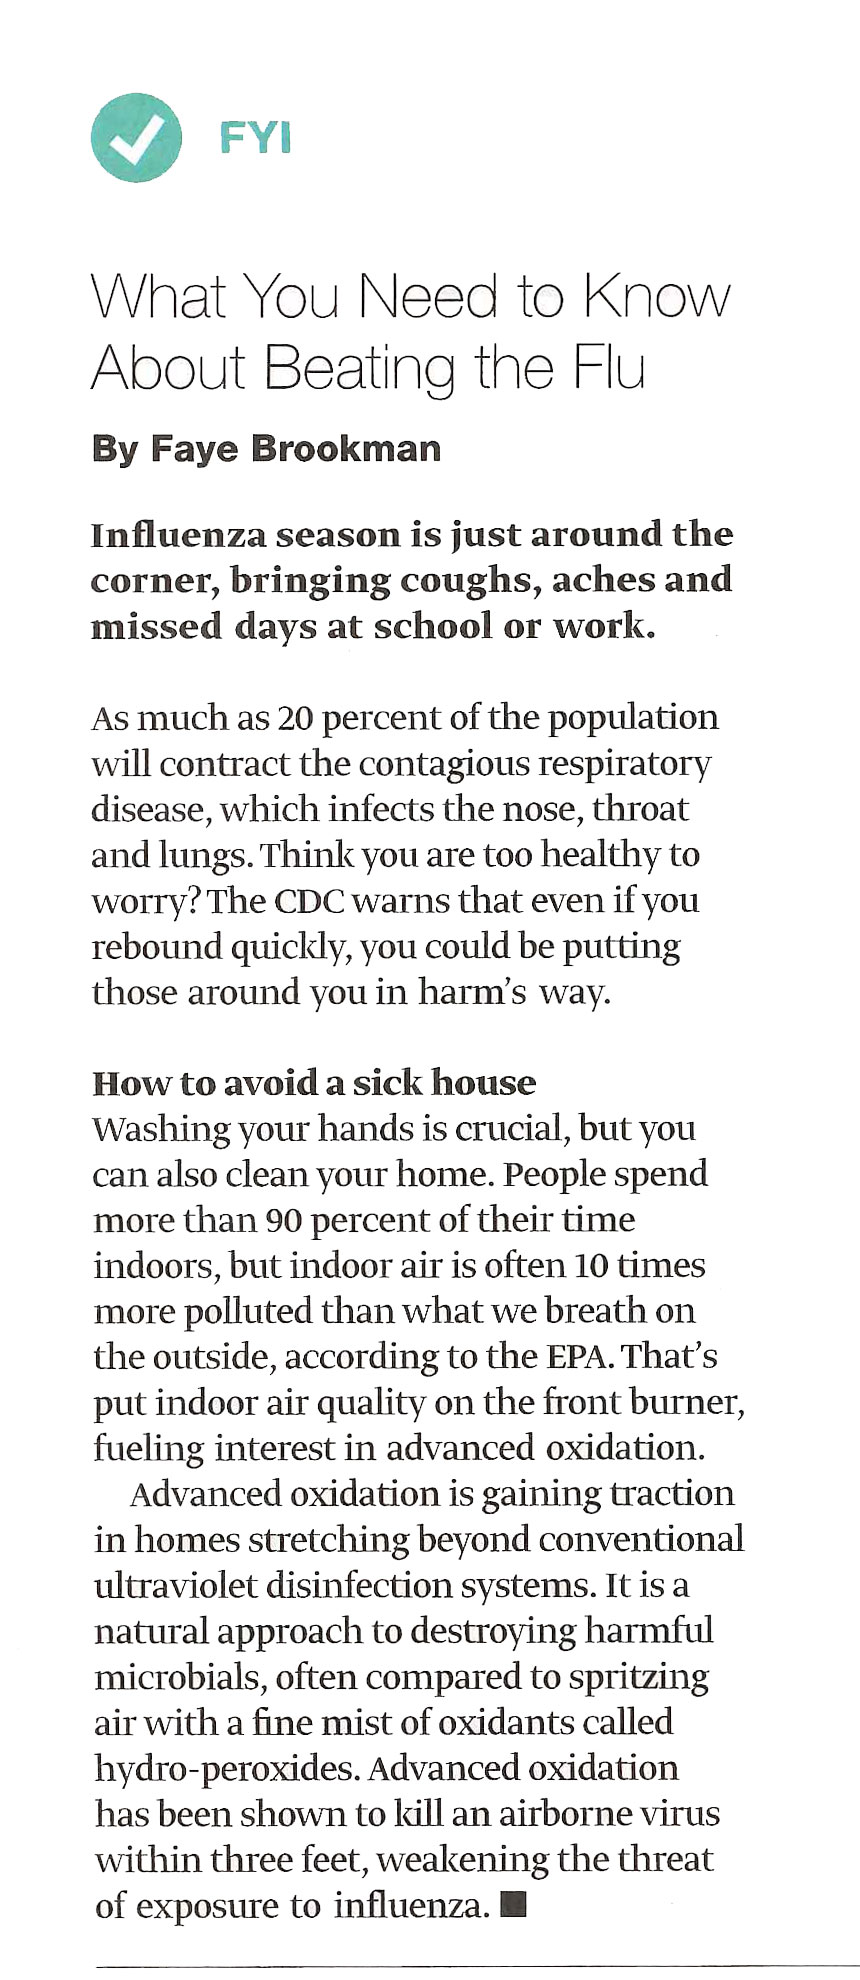 Article about the FLU